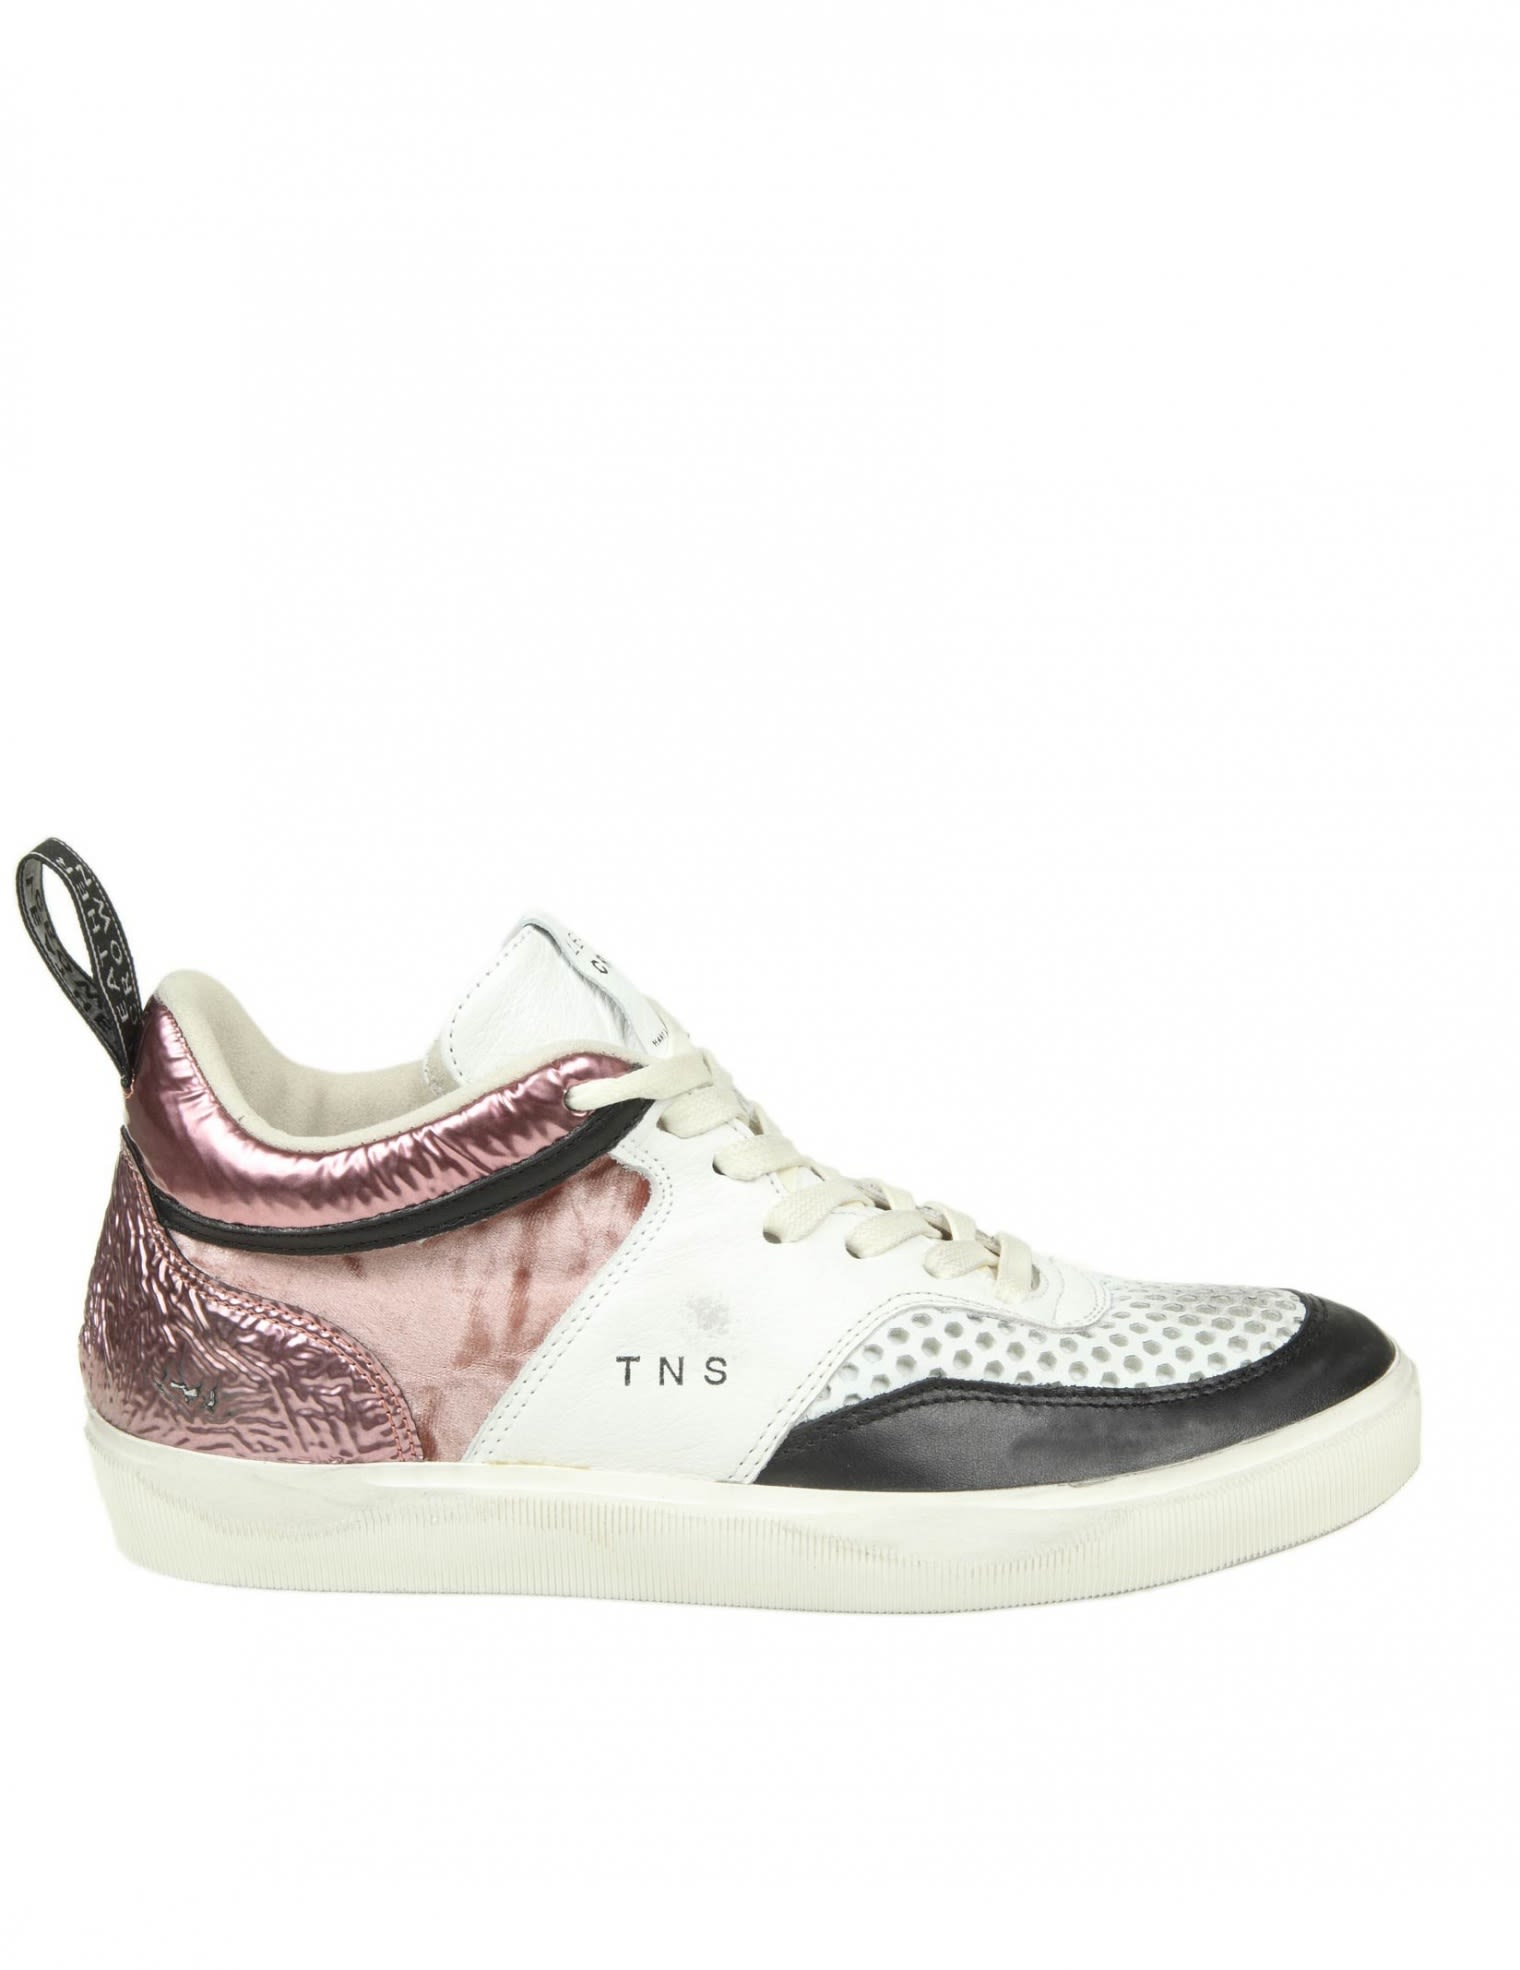 LEATHER CROWN LEATHER SNEAKERS WITH DETAILS IN VELVET AND LAMINATED LE